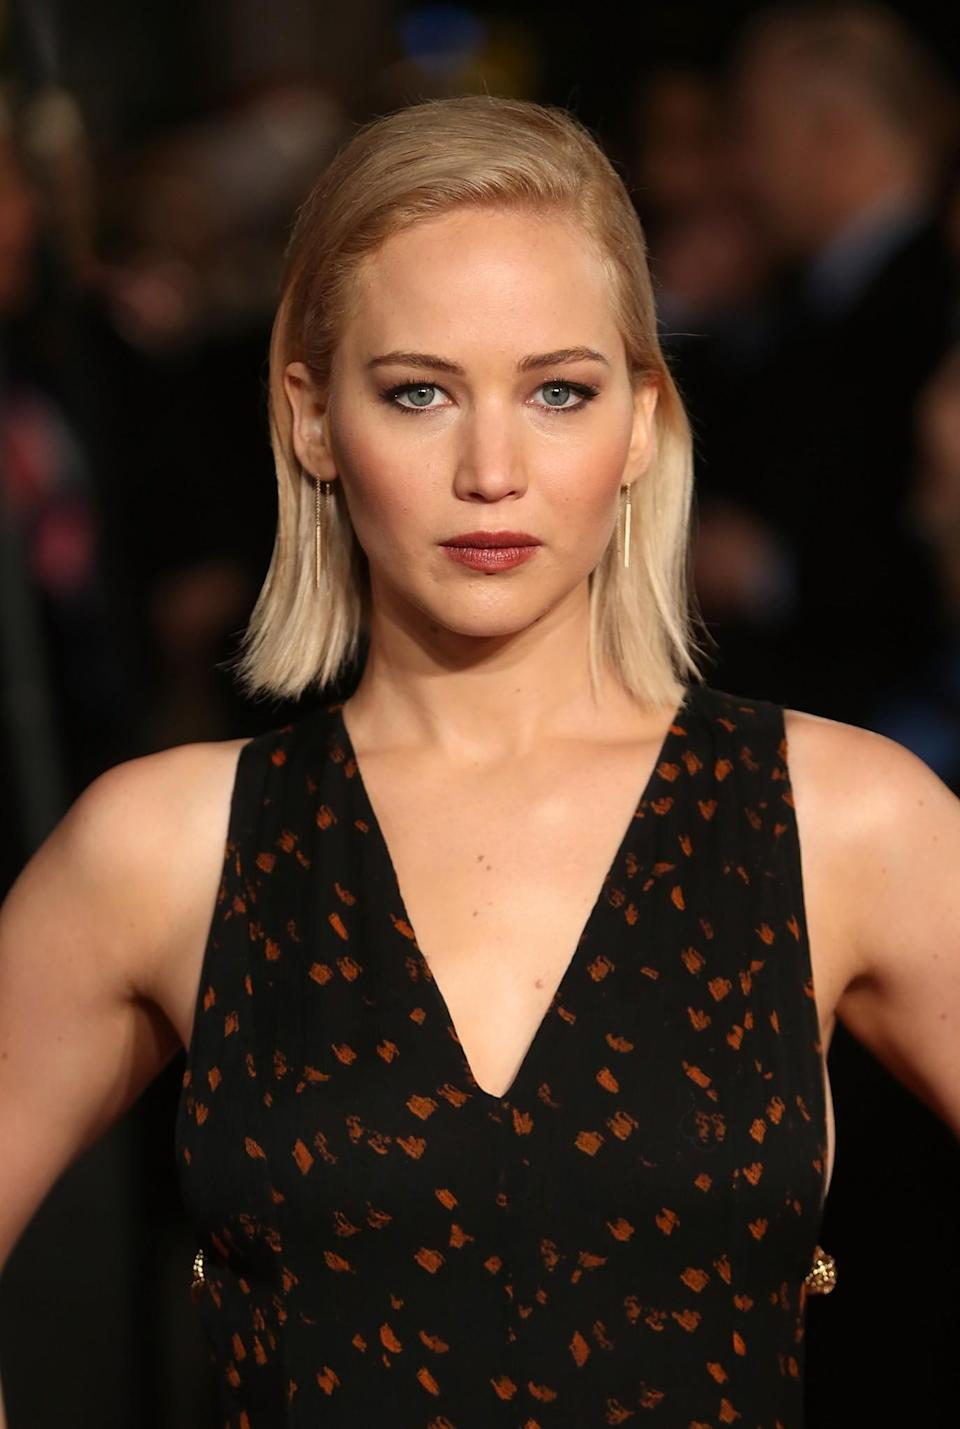 <p>Jennifer took to the red carpet at the London premiere of 'The Hunger Games: Mockingjay Part 2' with a fierce look. Her short 'do was straightened and tucked behind the star's ears, which resulted in a striking finishing look. [Photo: Getty] </p>